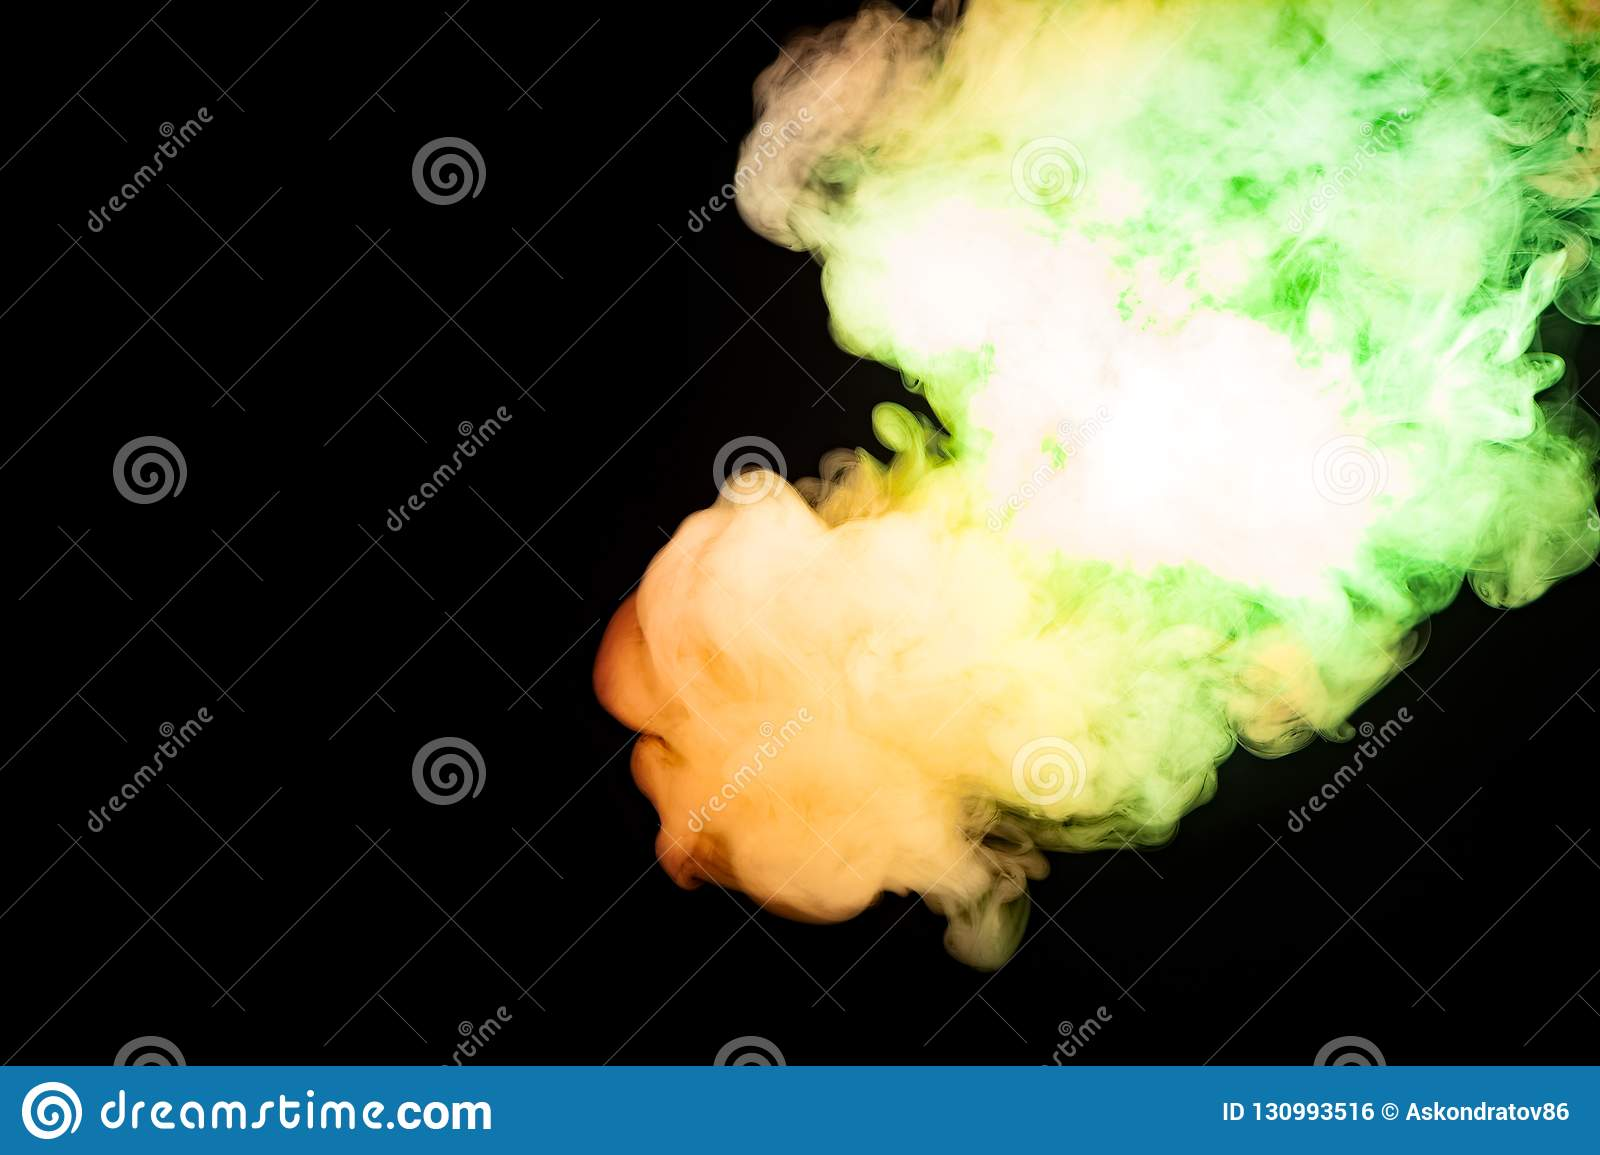 Multicolored smoke of red yellow and green colors from a vap scattering on a black isolated background